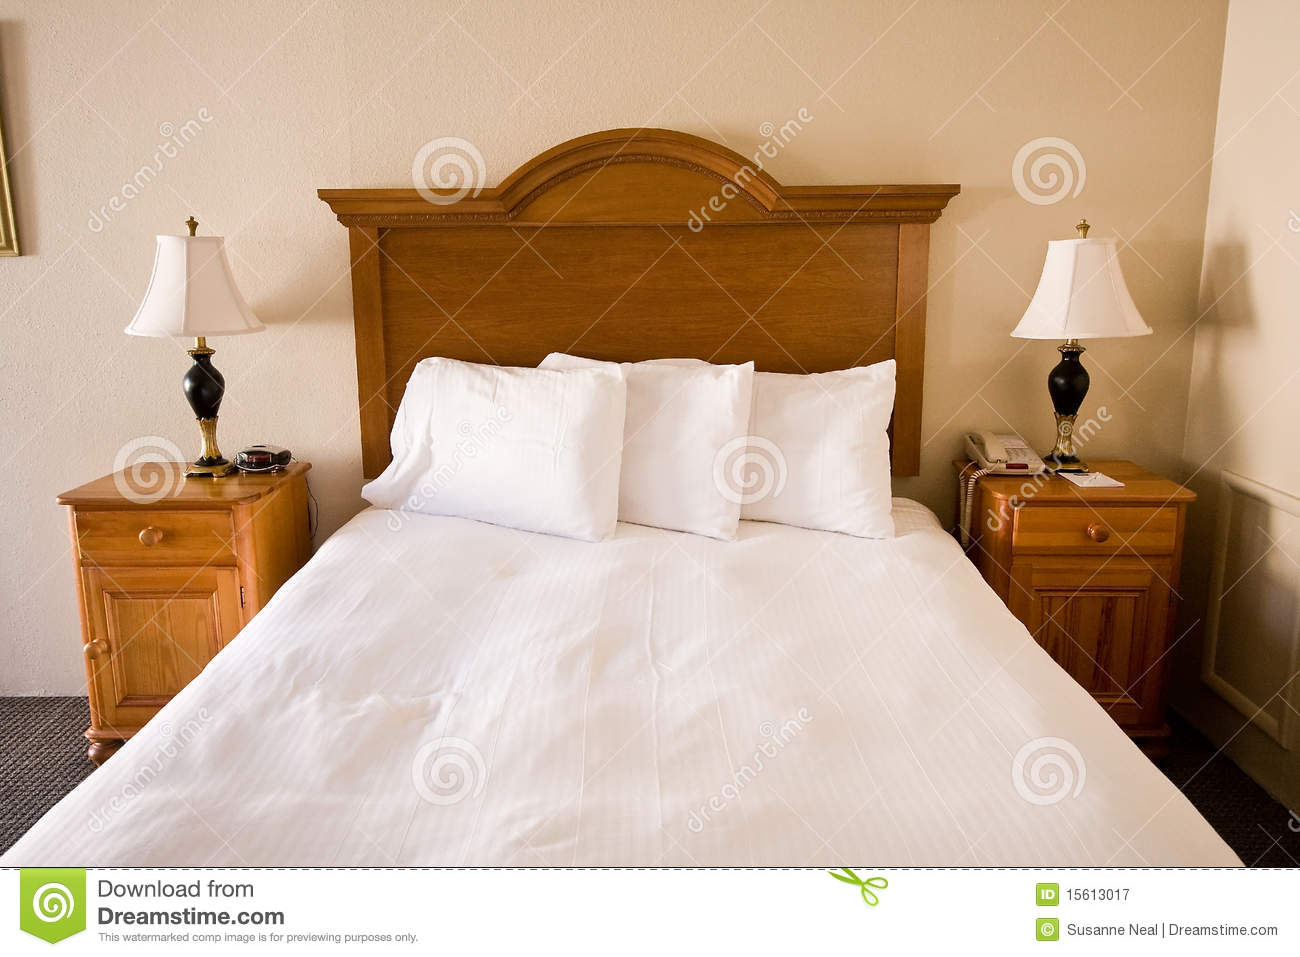 Royalty Free Stock Photo  Download Simple Bed. Simple Bed  Headboard  Nightstands  Lamps Royalty Free Stock